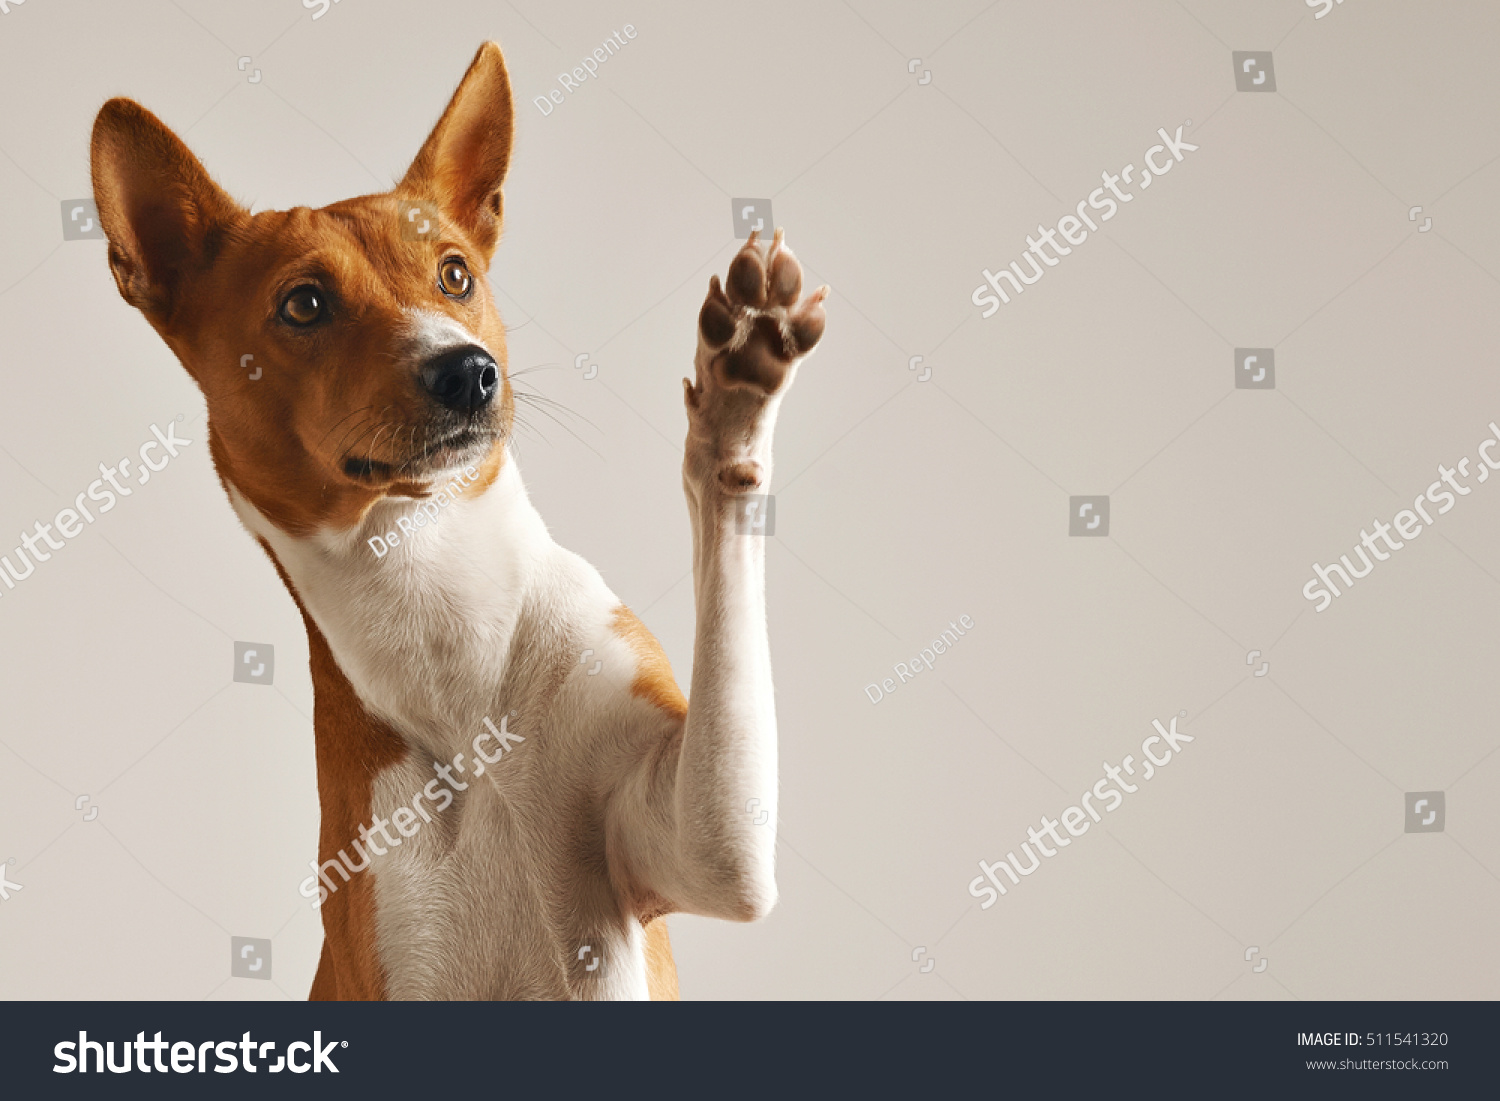 Adorable brown and white basenji dog smiling and giving a high five isolated on white #511541320